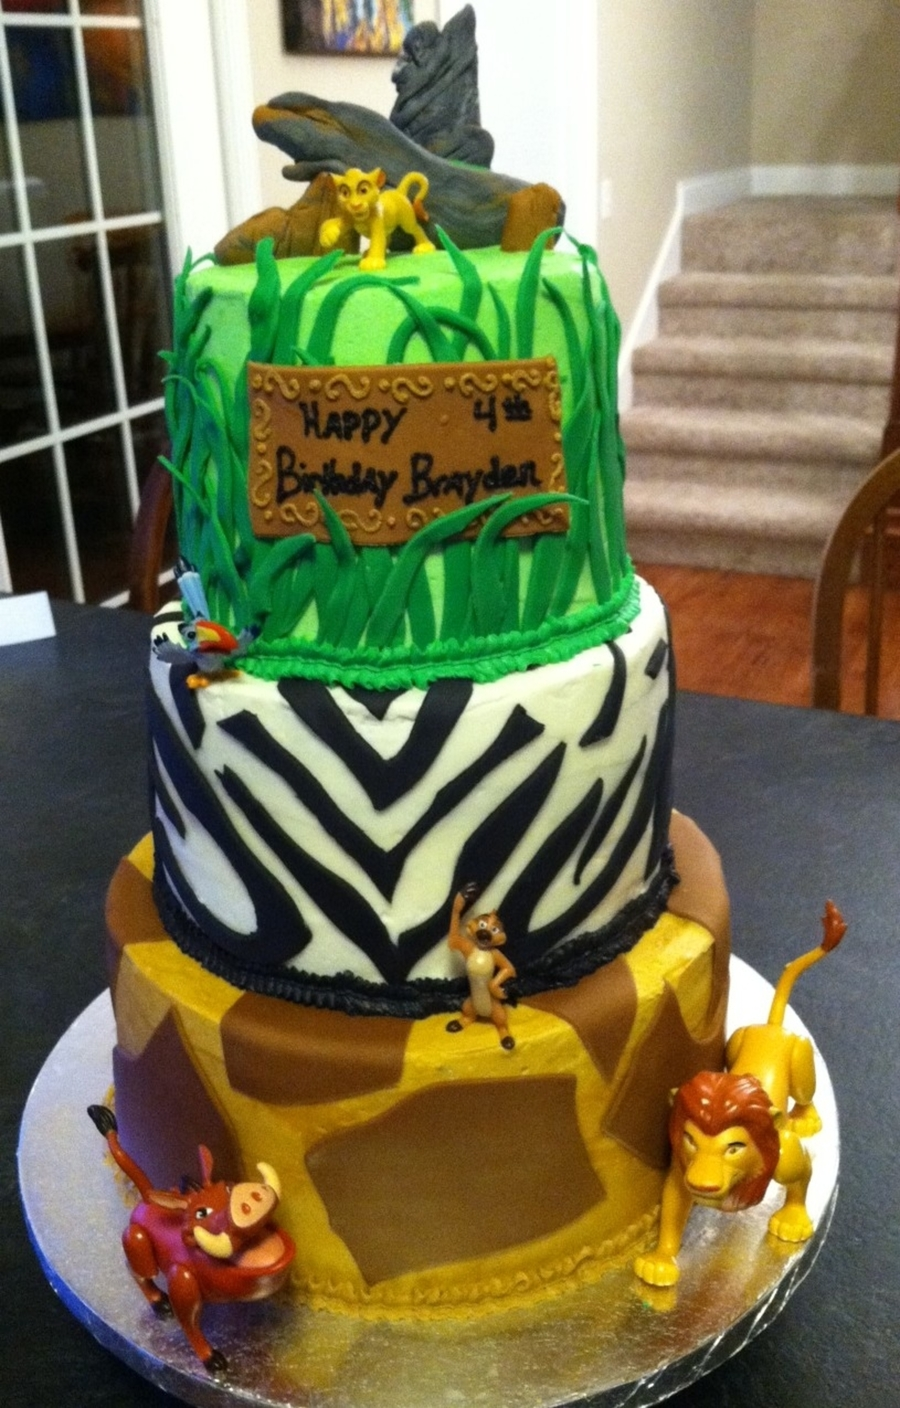 Hakuna Matada! on Cake Central